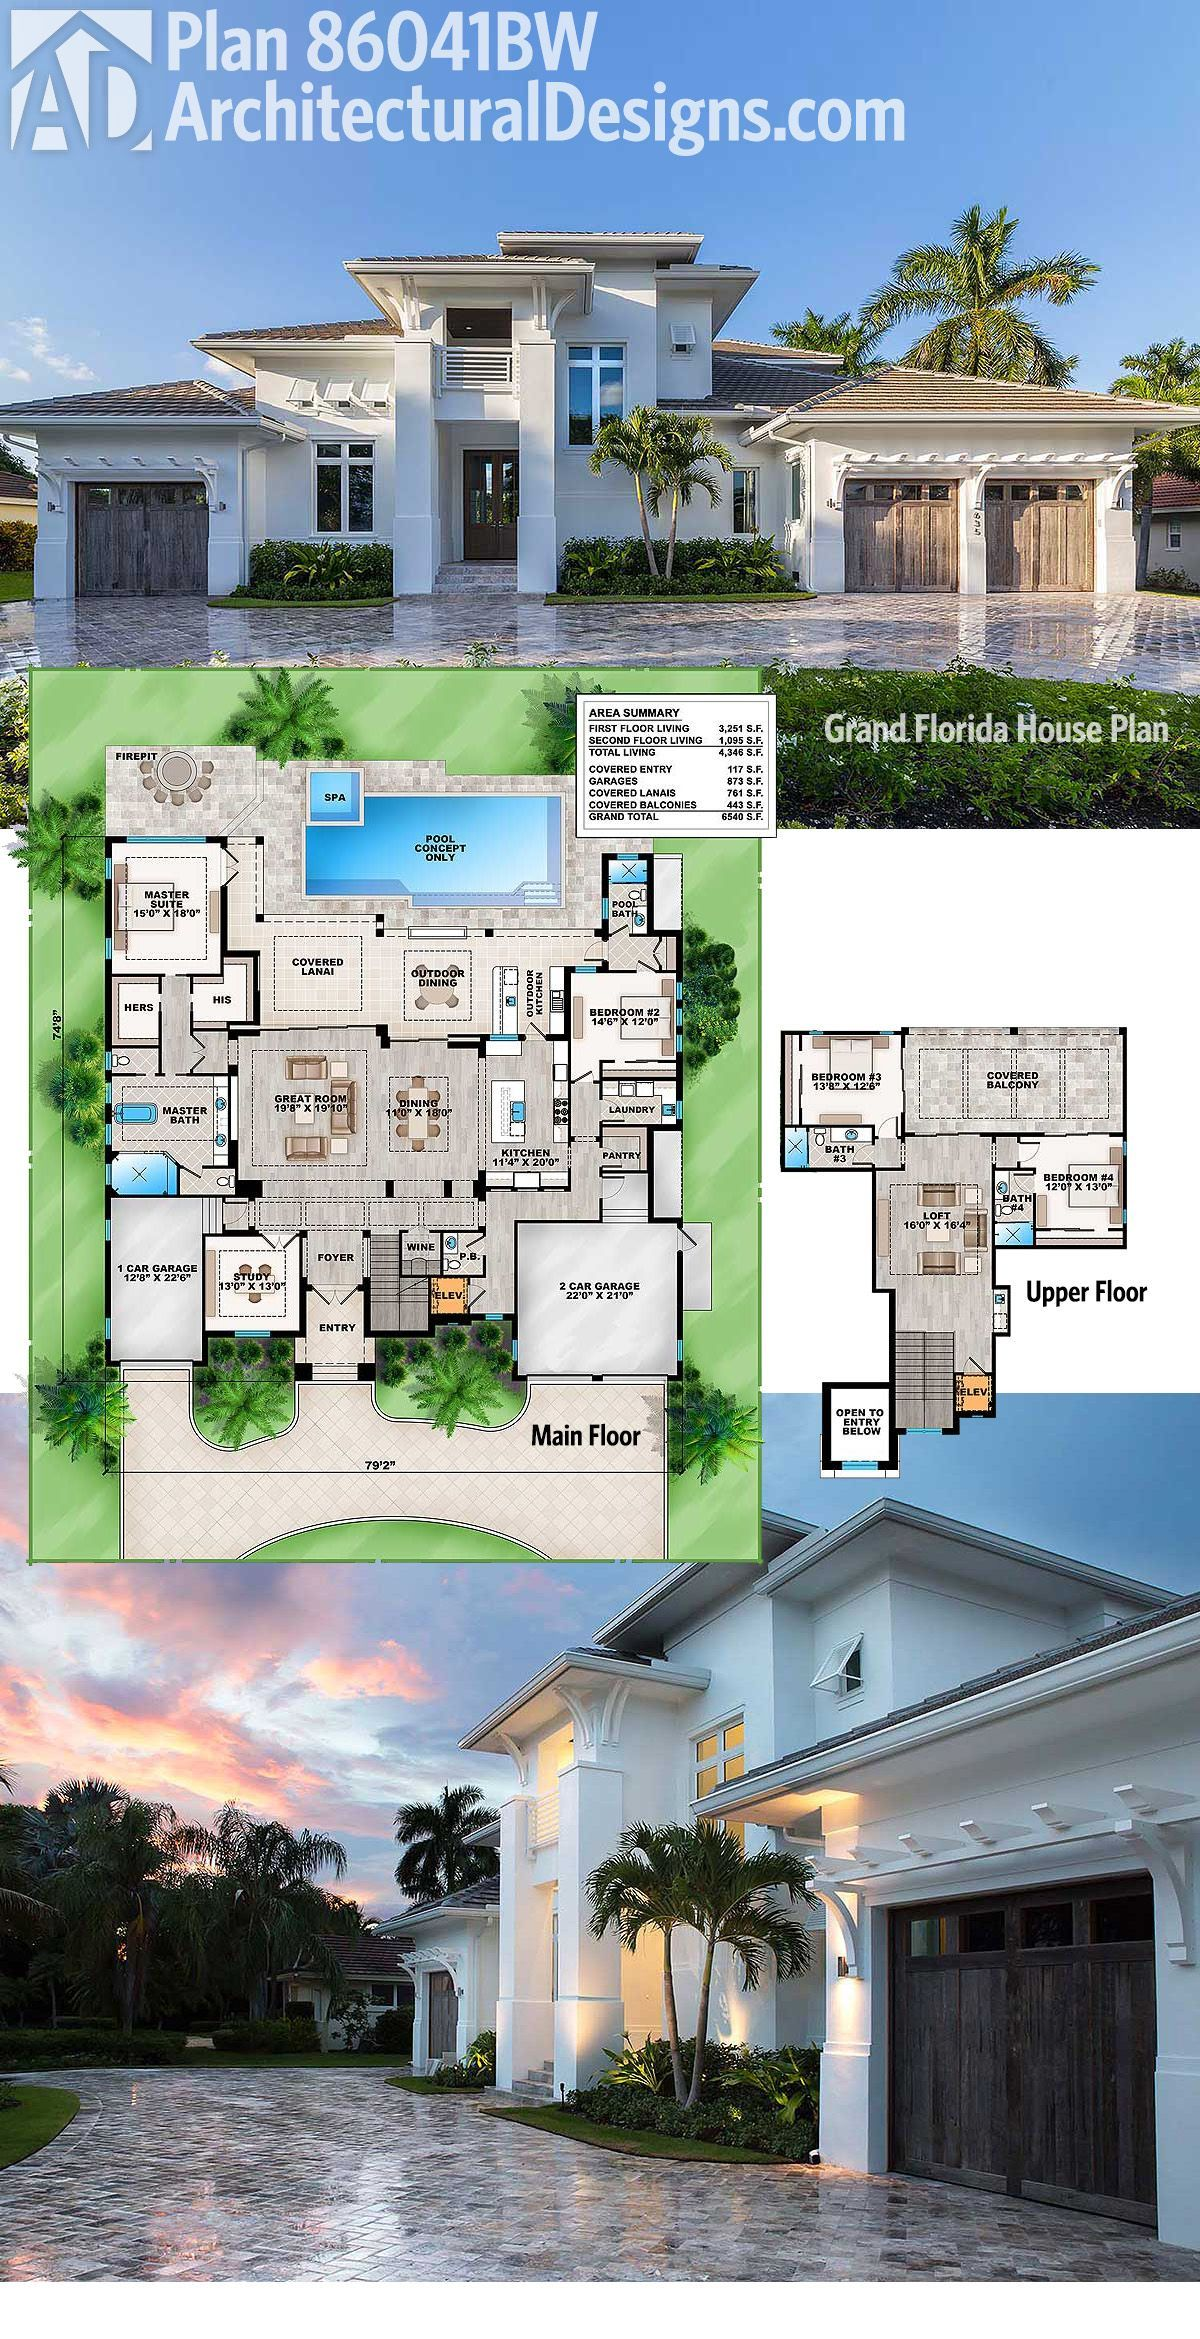 Architectural Designs House Plan 86041BW has an